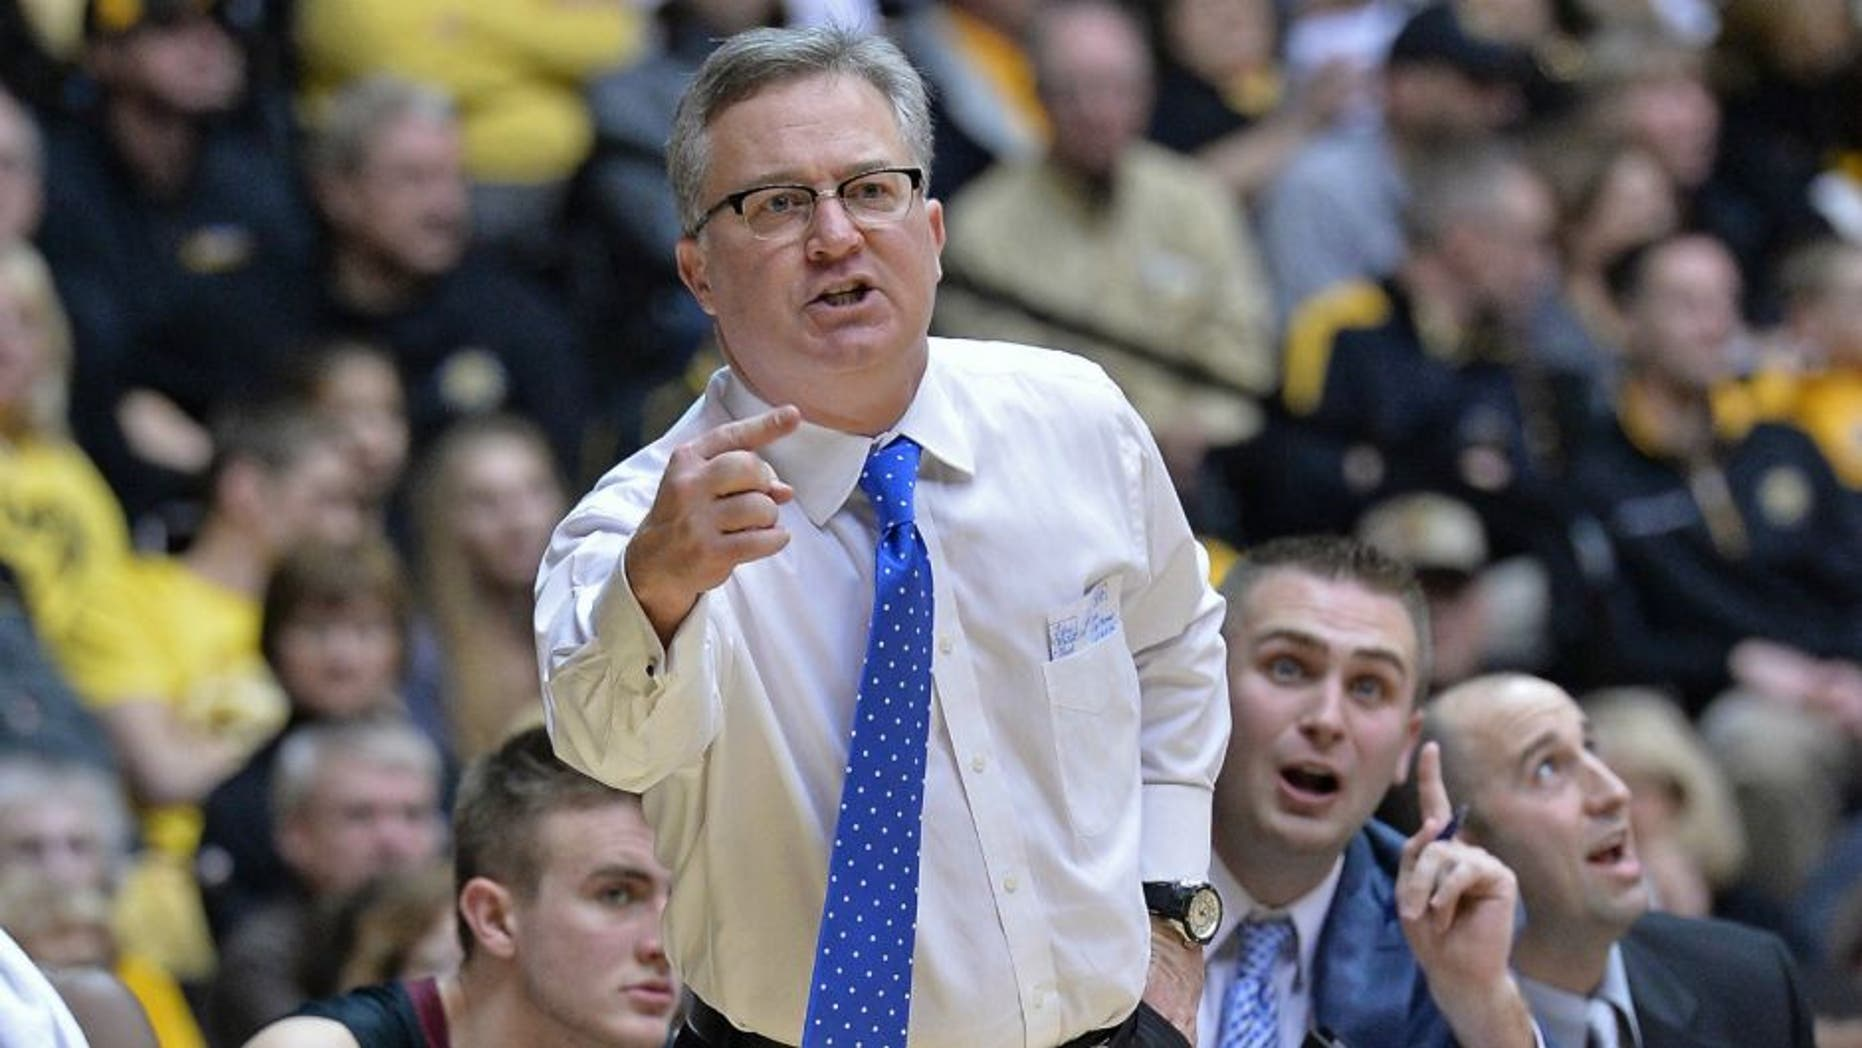 WICHITA, KS - FEBRUARY 11: Head coach Barry Hinson of the Southern Illinois Salukis calls out instructions against the Wichita State Shockers during the first half on February 11, 2014 at Charles Koch Arena in Wichita, Kansas. Wichita State won 78-67. (Photo by Peter Aiken/Getty Images)